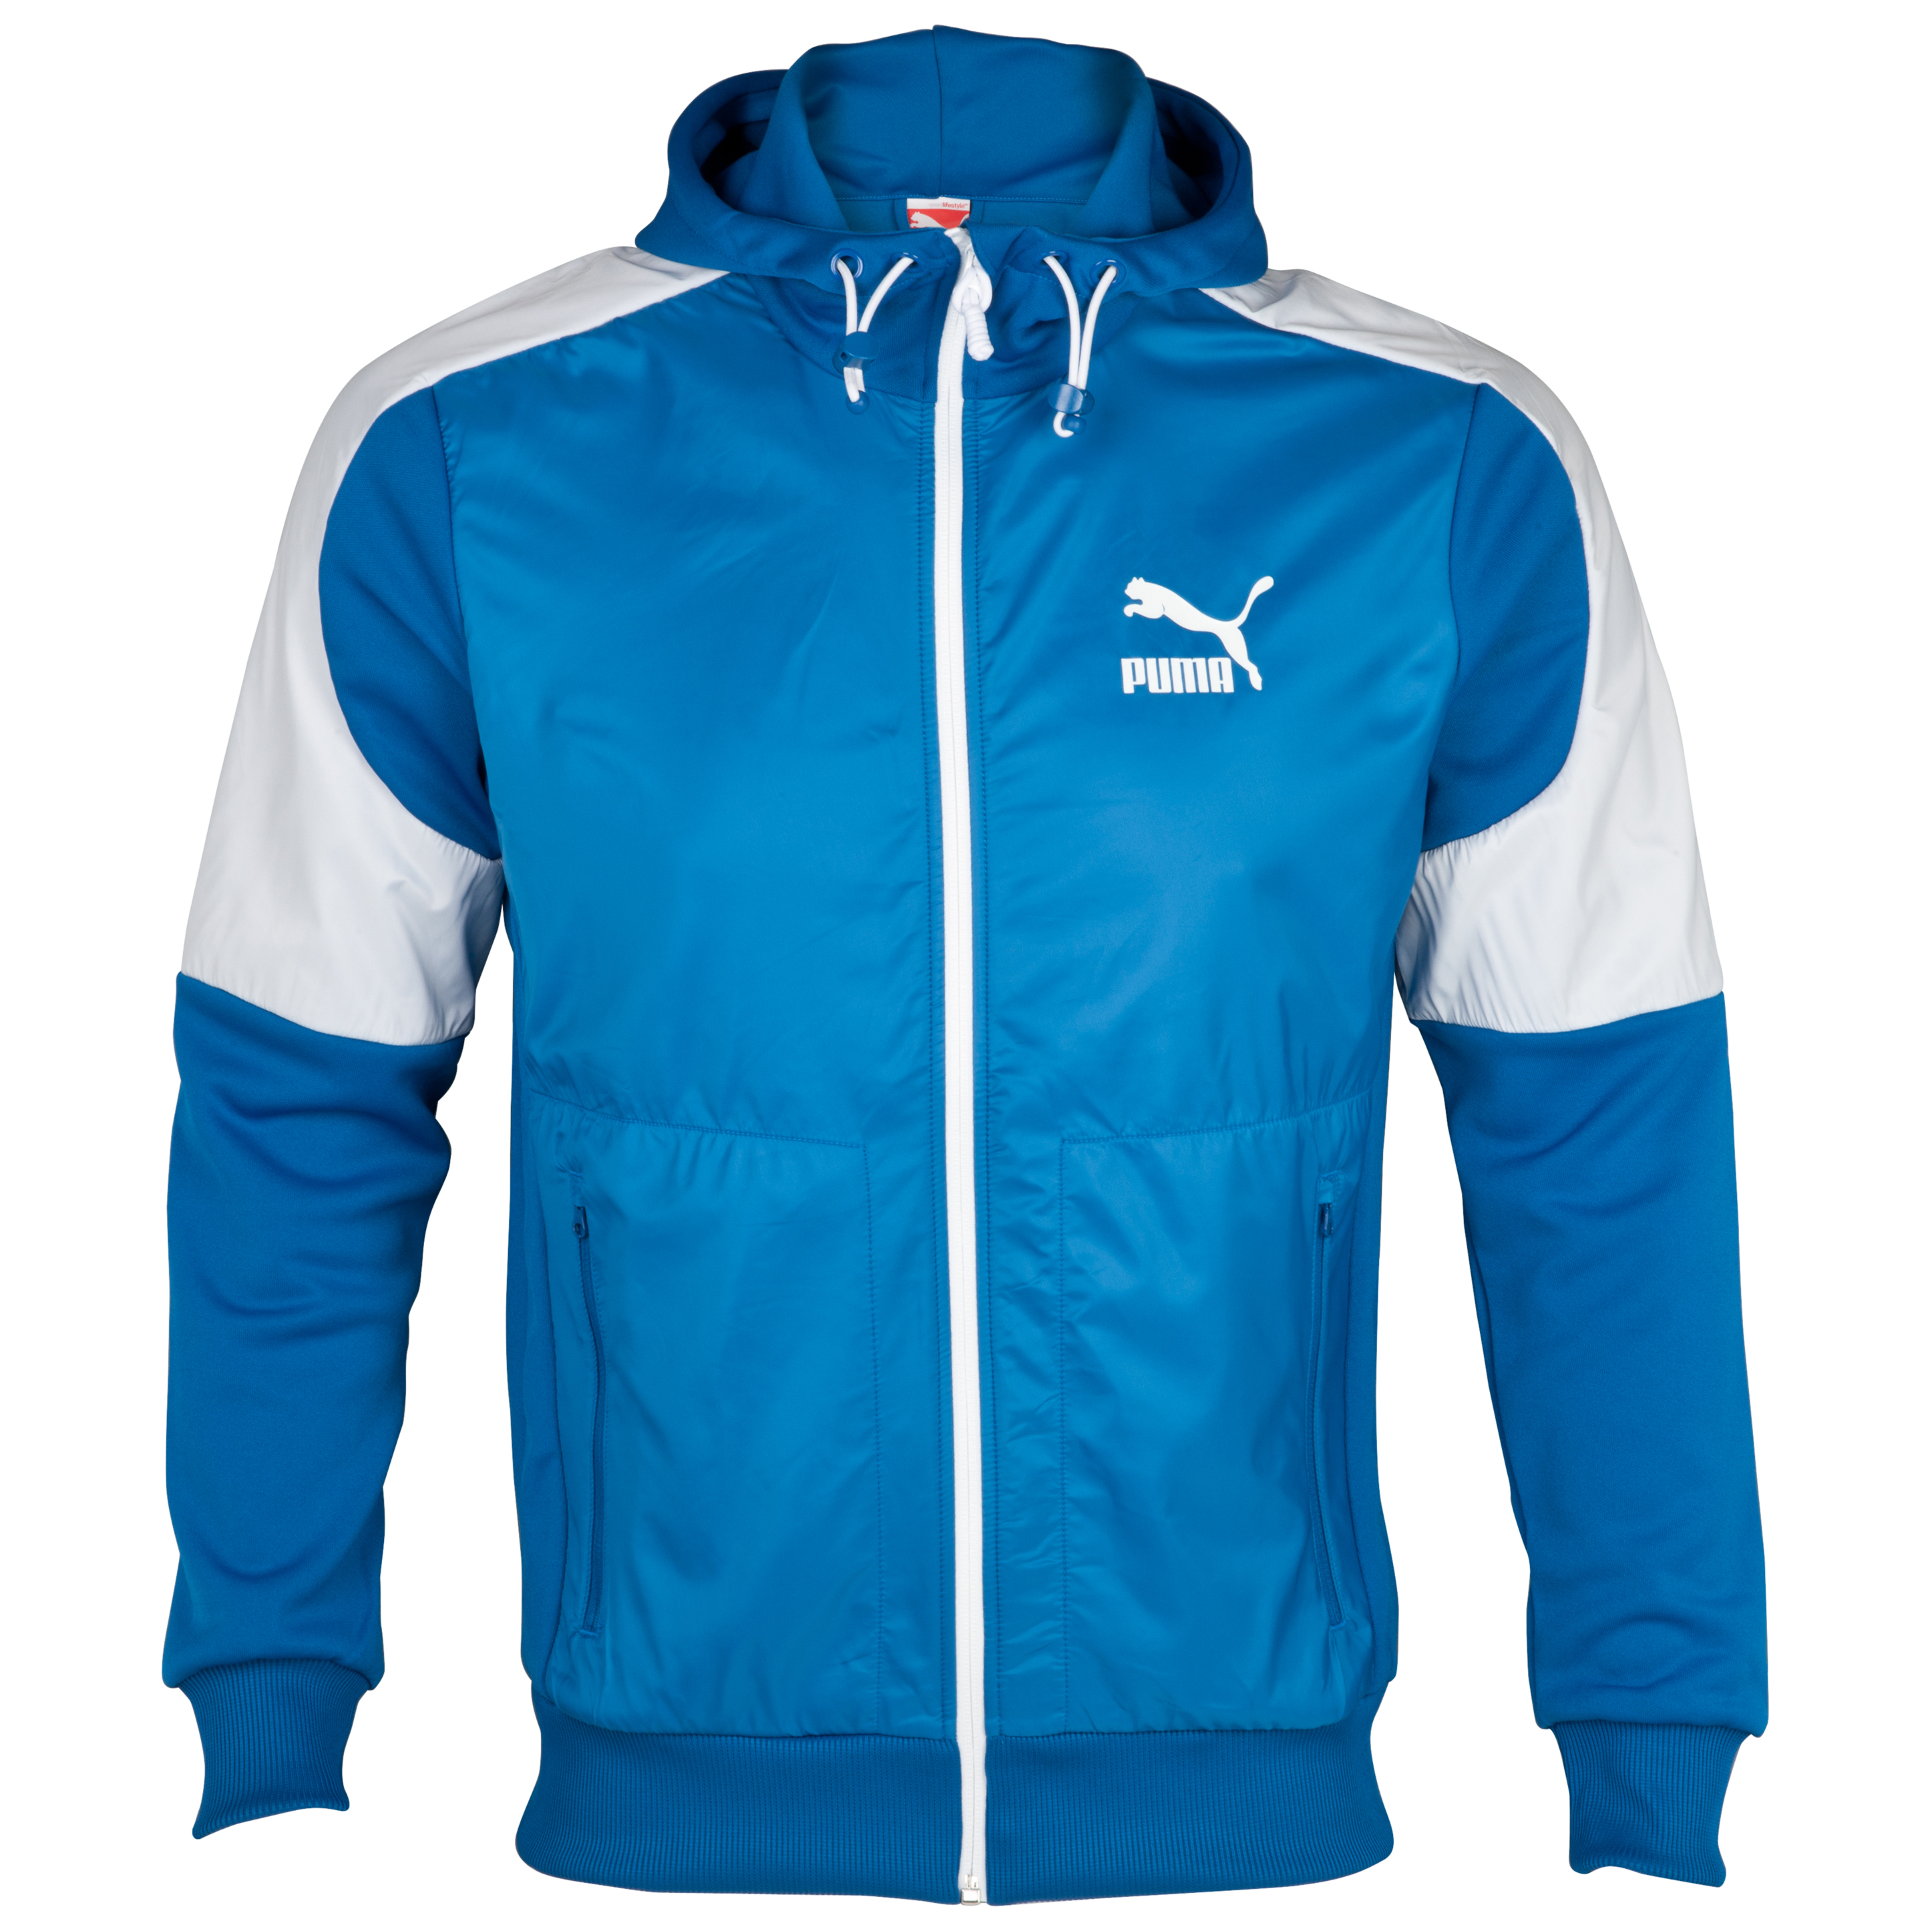 Puma Kai Track Jacket - Blue/White